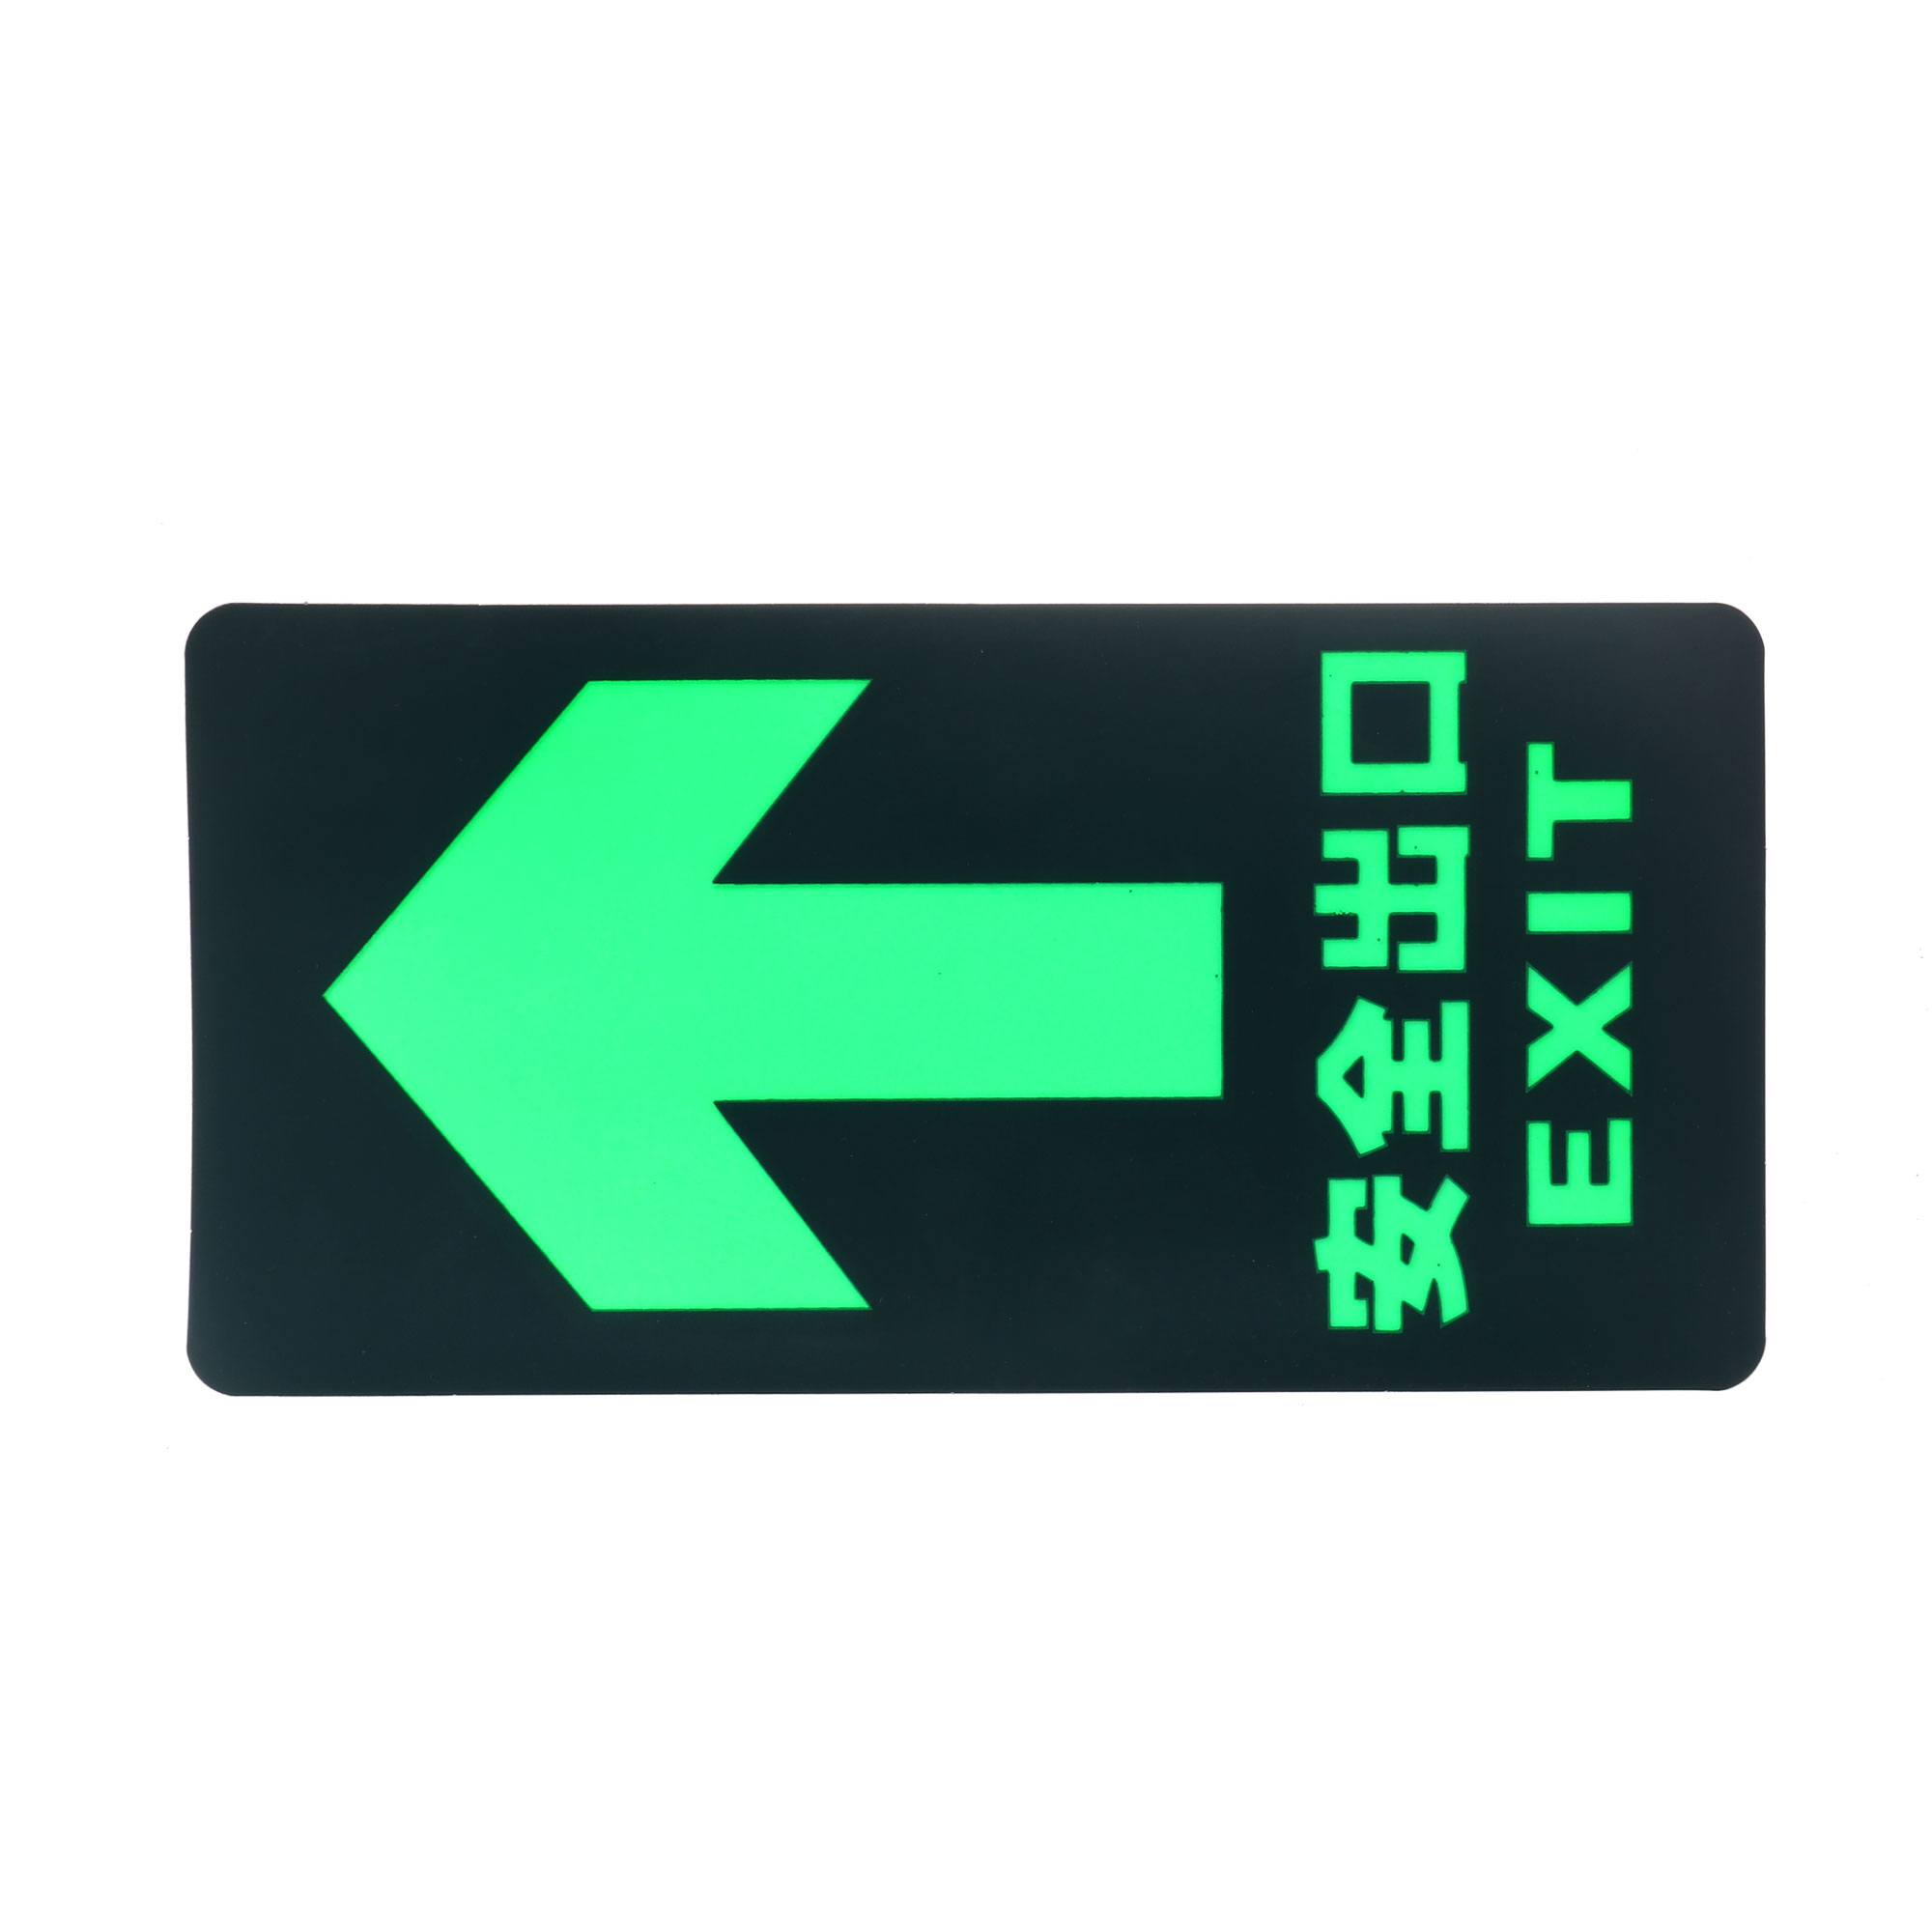 Emergency Straight Arrow Glow in the Dark Exit Sign Sticker Decal